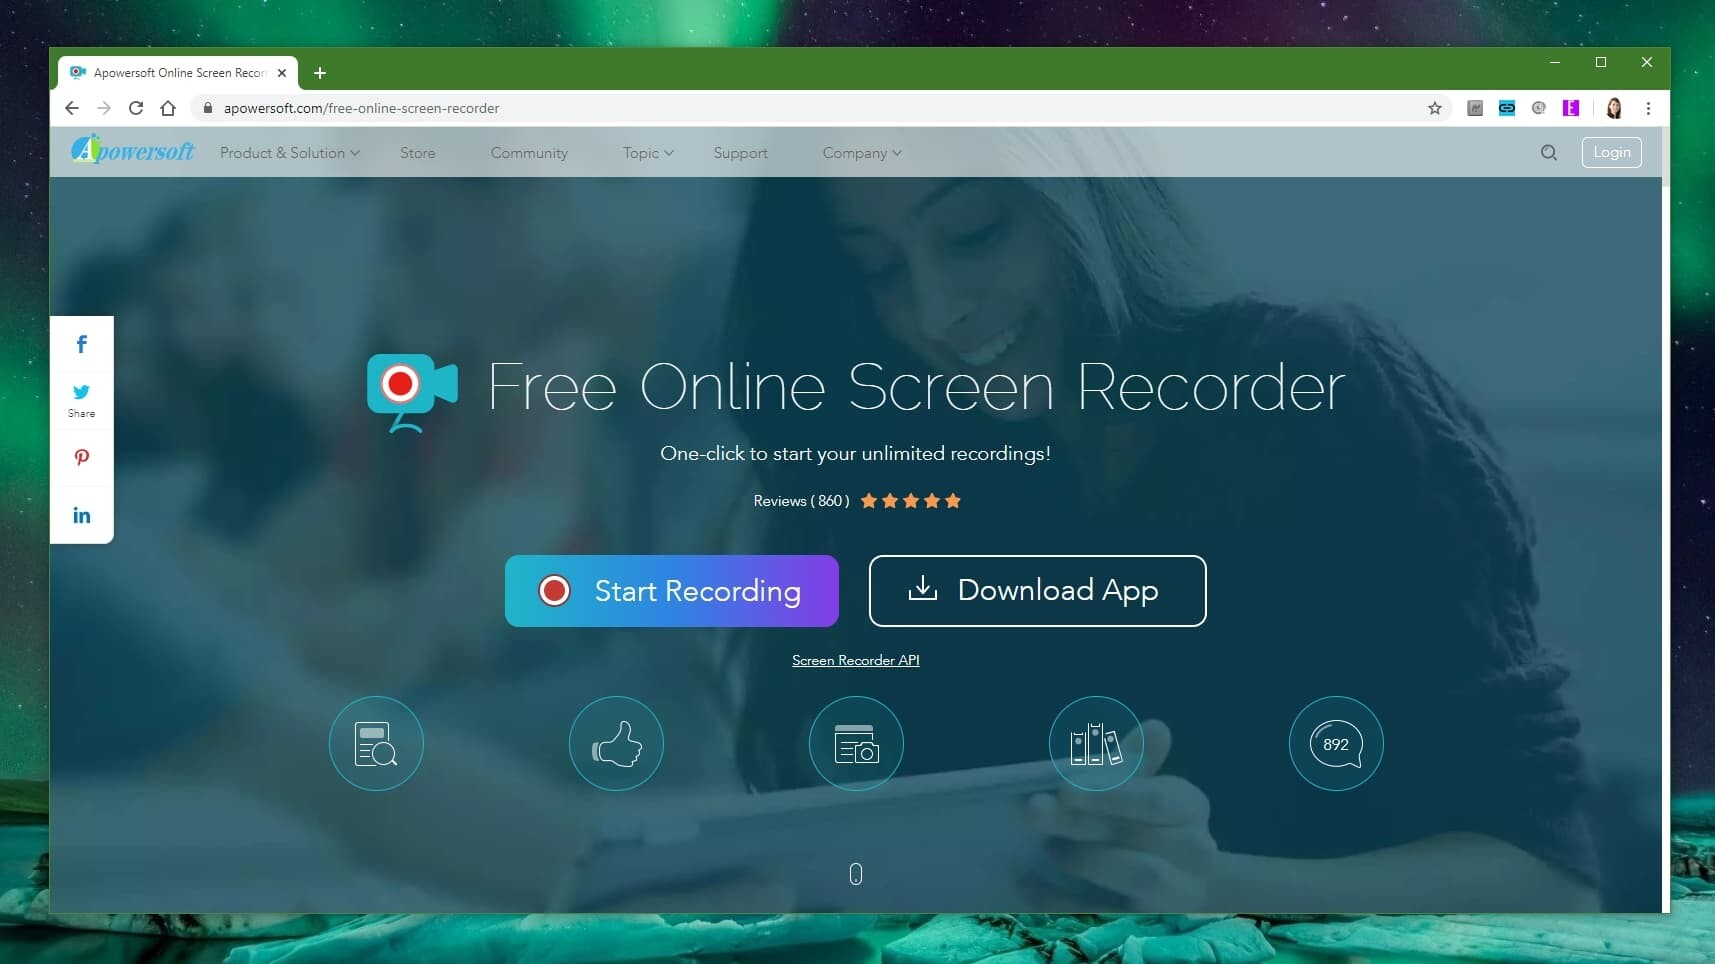 Apowersoft-Free-Online-Screen-Recorde